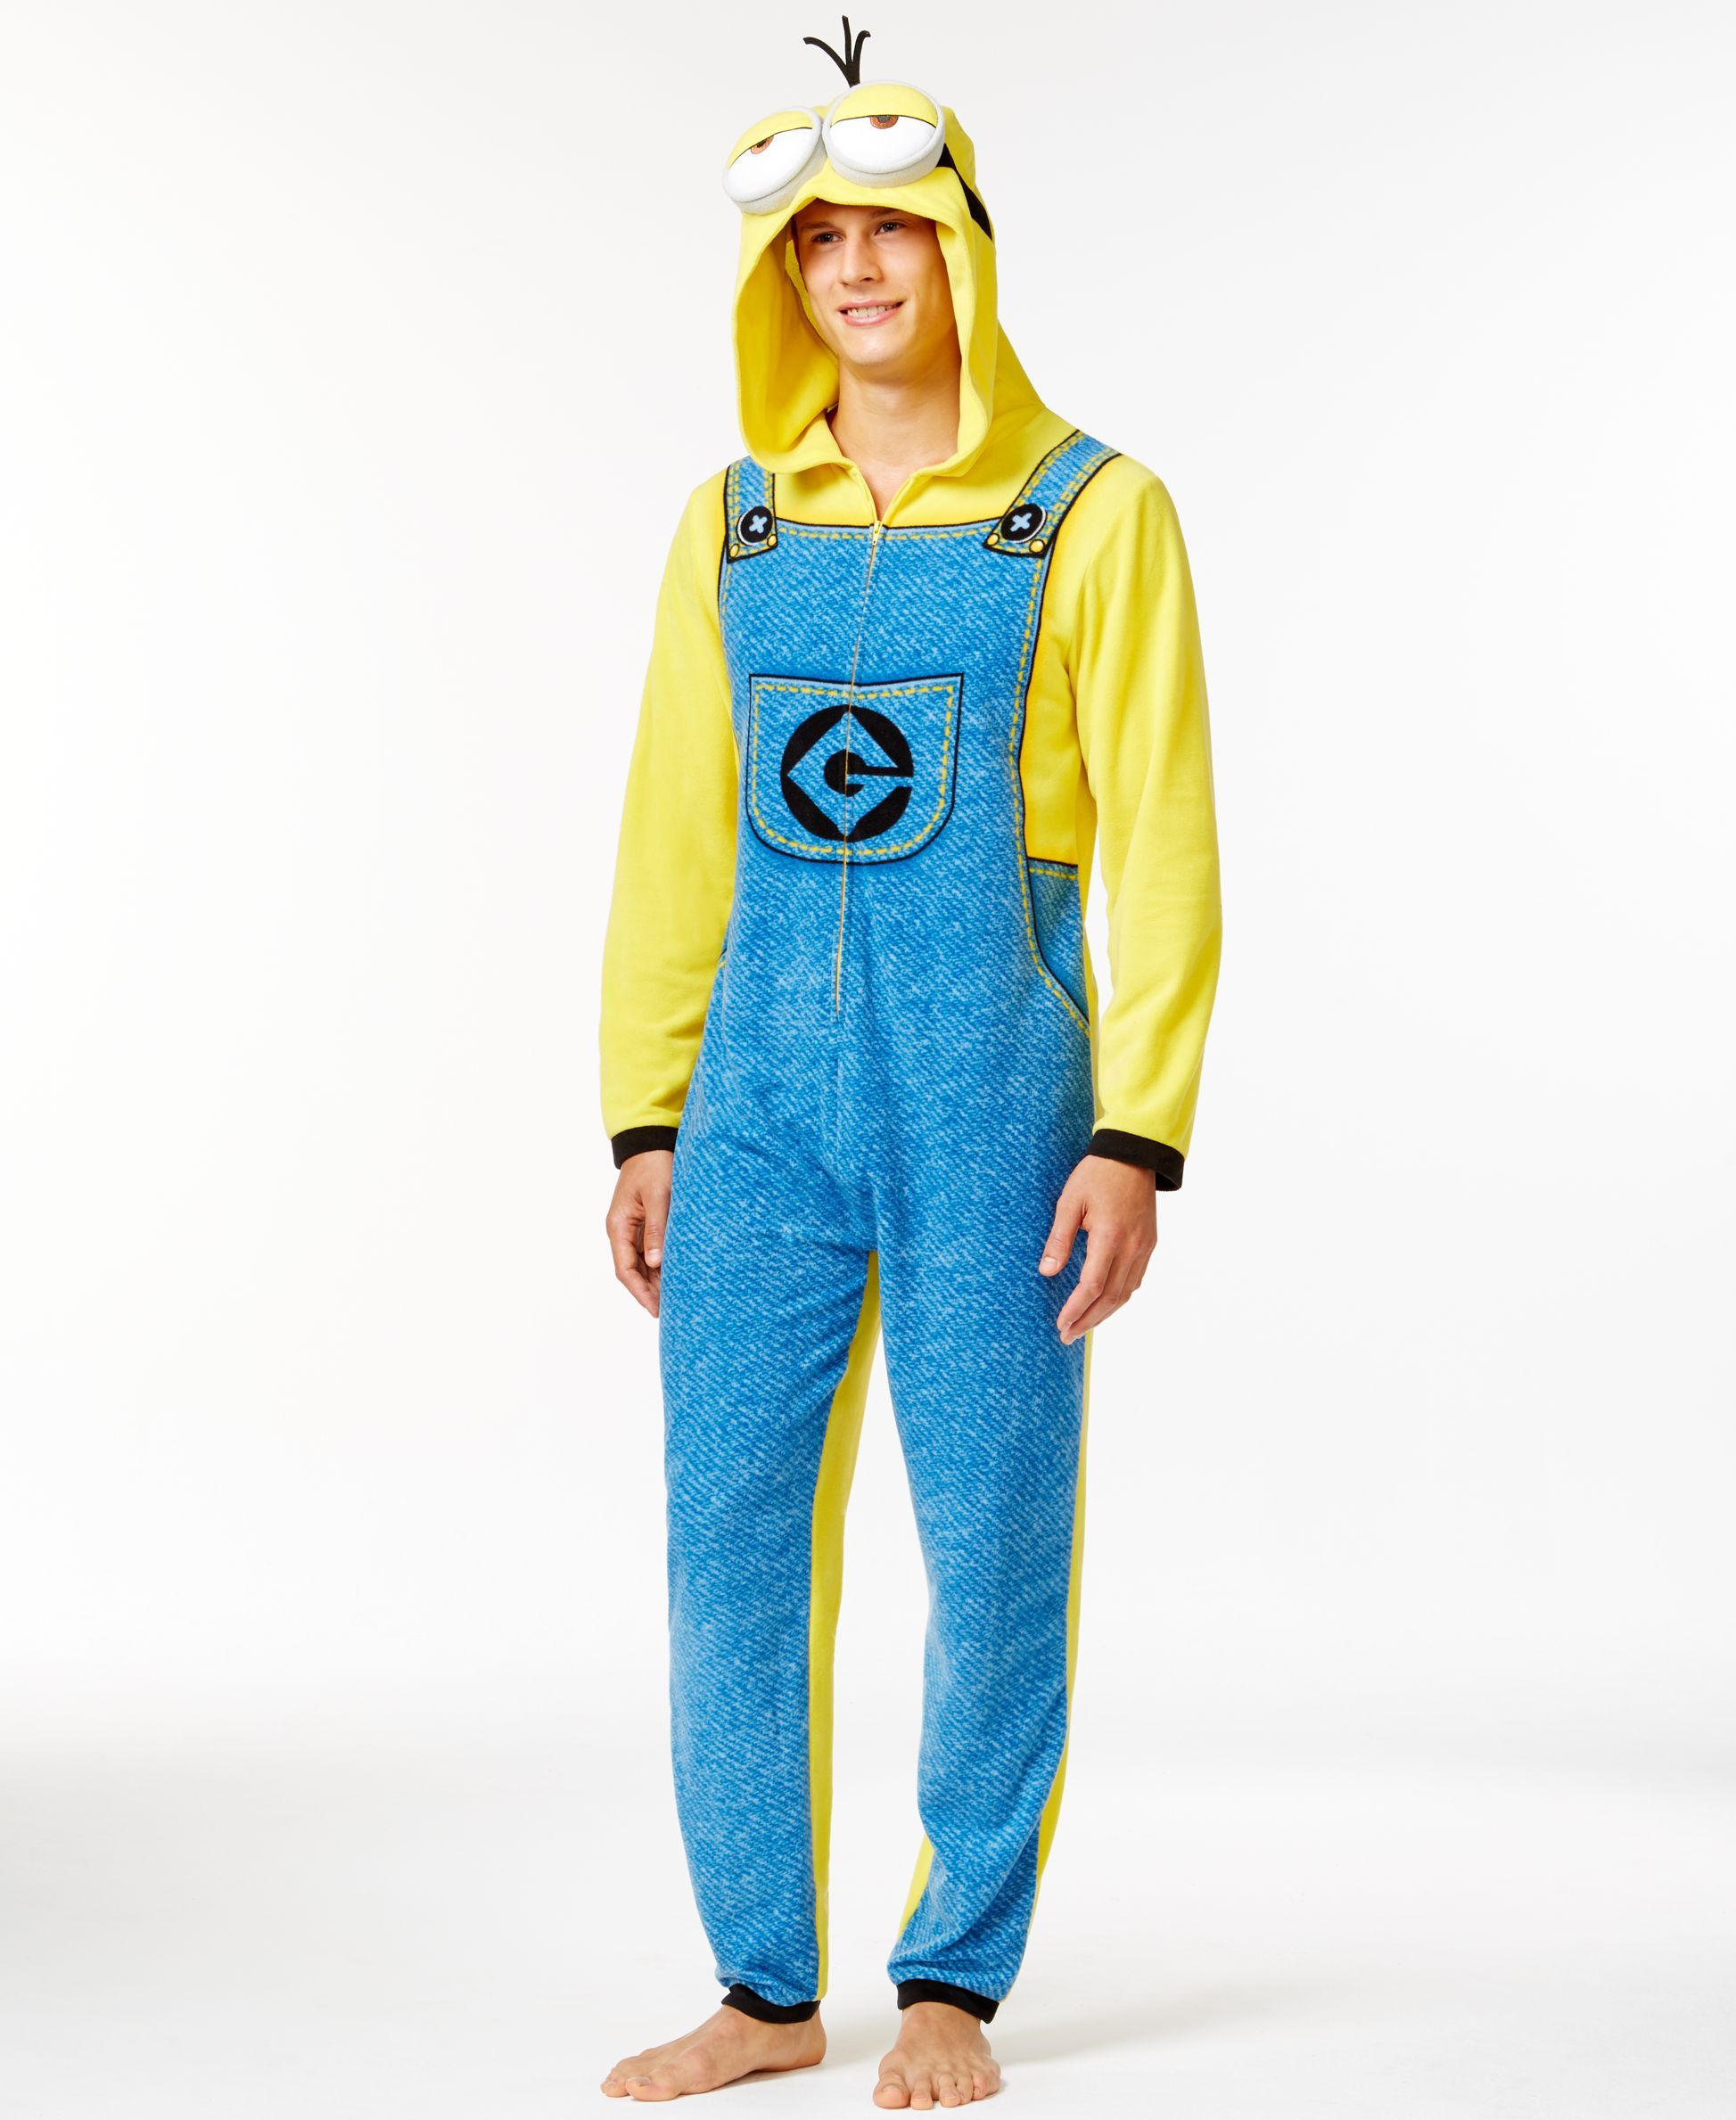 b6b823a5e094 Briefly Stated Despicable Me Minion Hooded One-Piece Pajama Suit ...